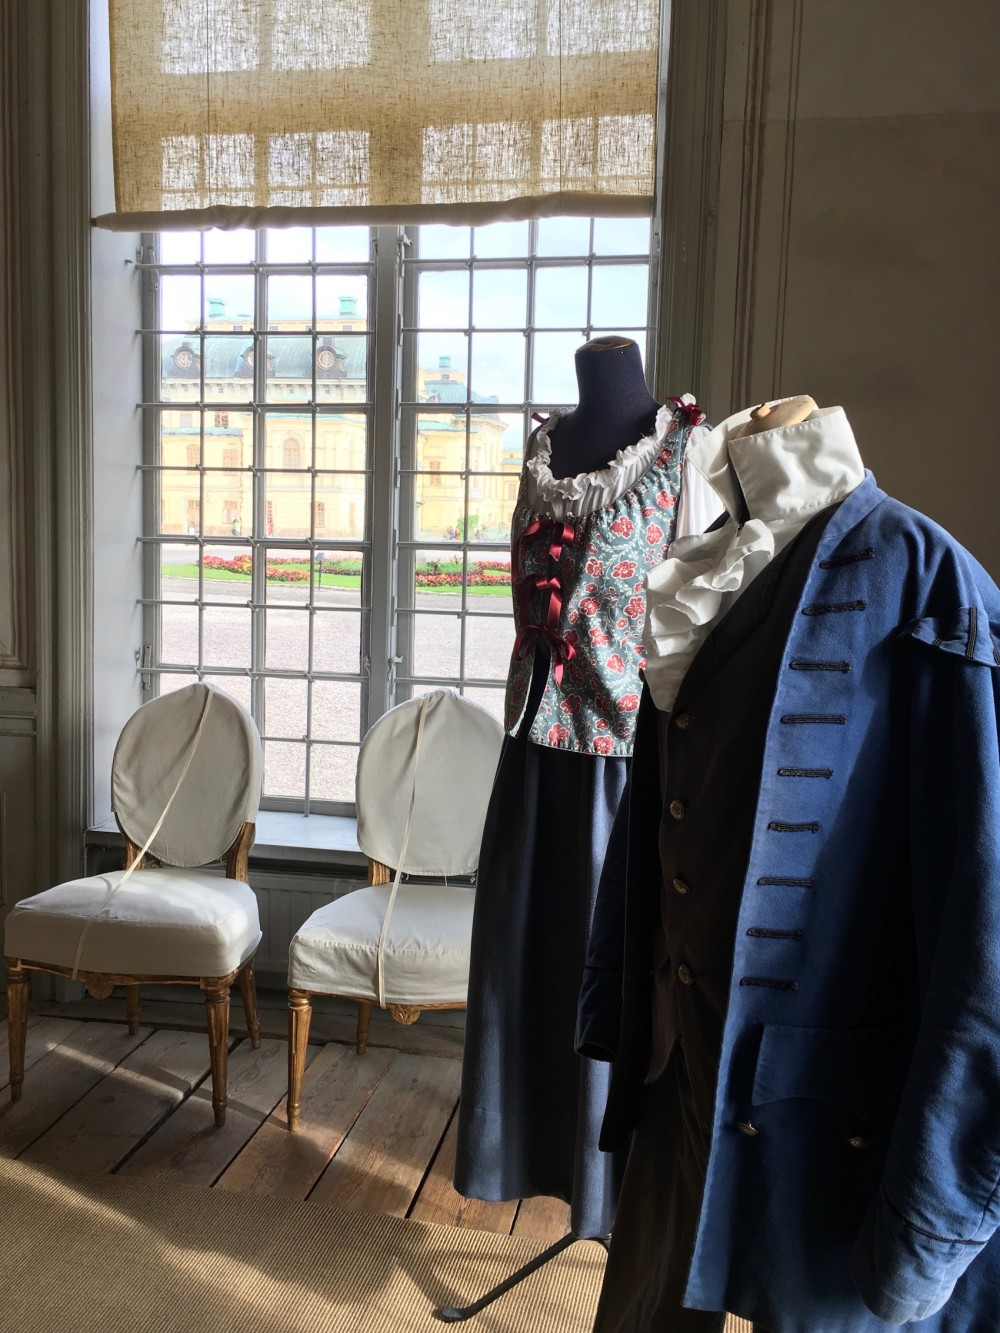 Visitors will learn more about 18th-century theatre than they knew possible. Pictured: period costumes on display in one of the side rooms. – © Frank Biasi